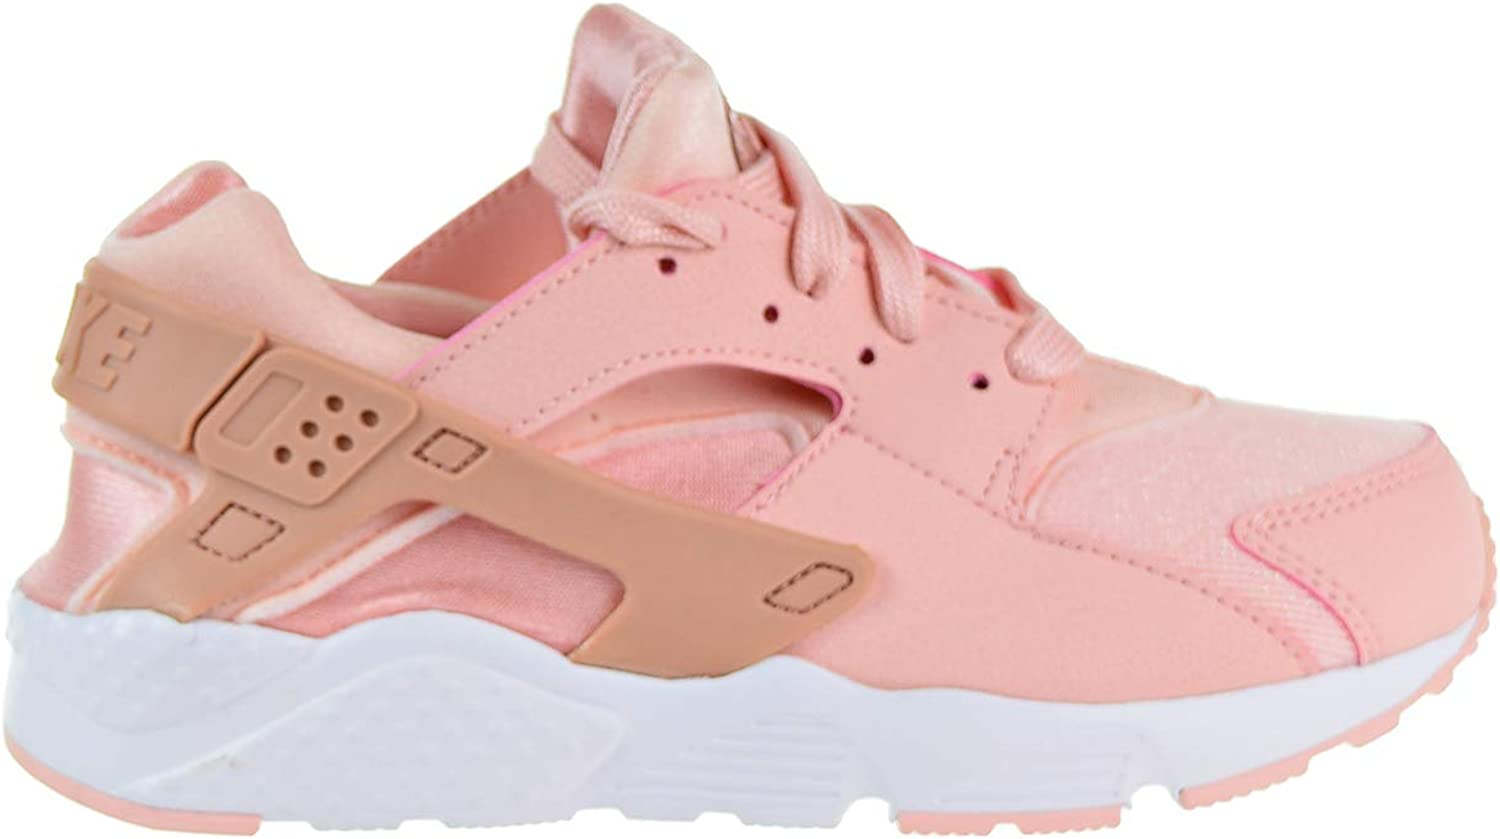 Shoes Storm Pink/Rust Pink